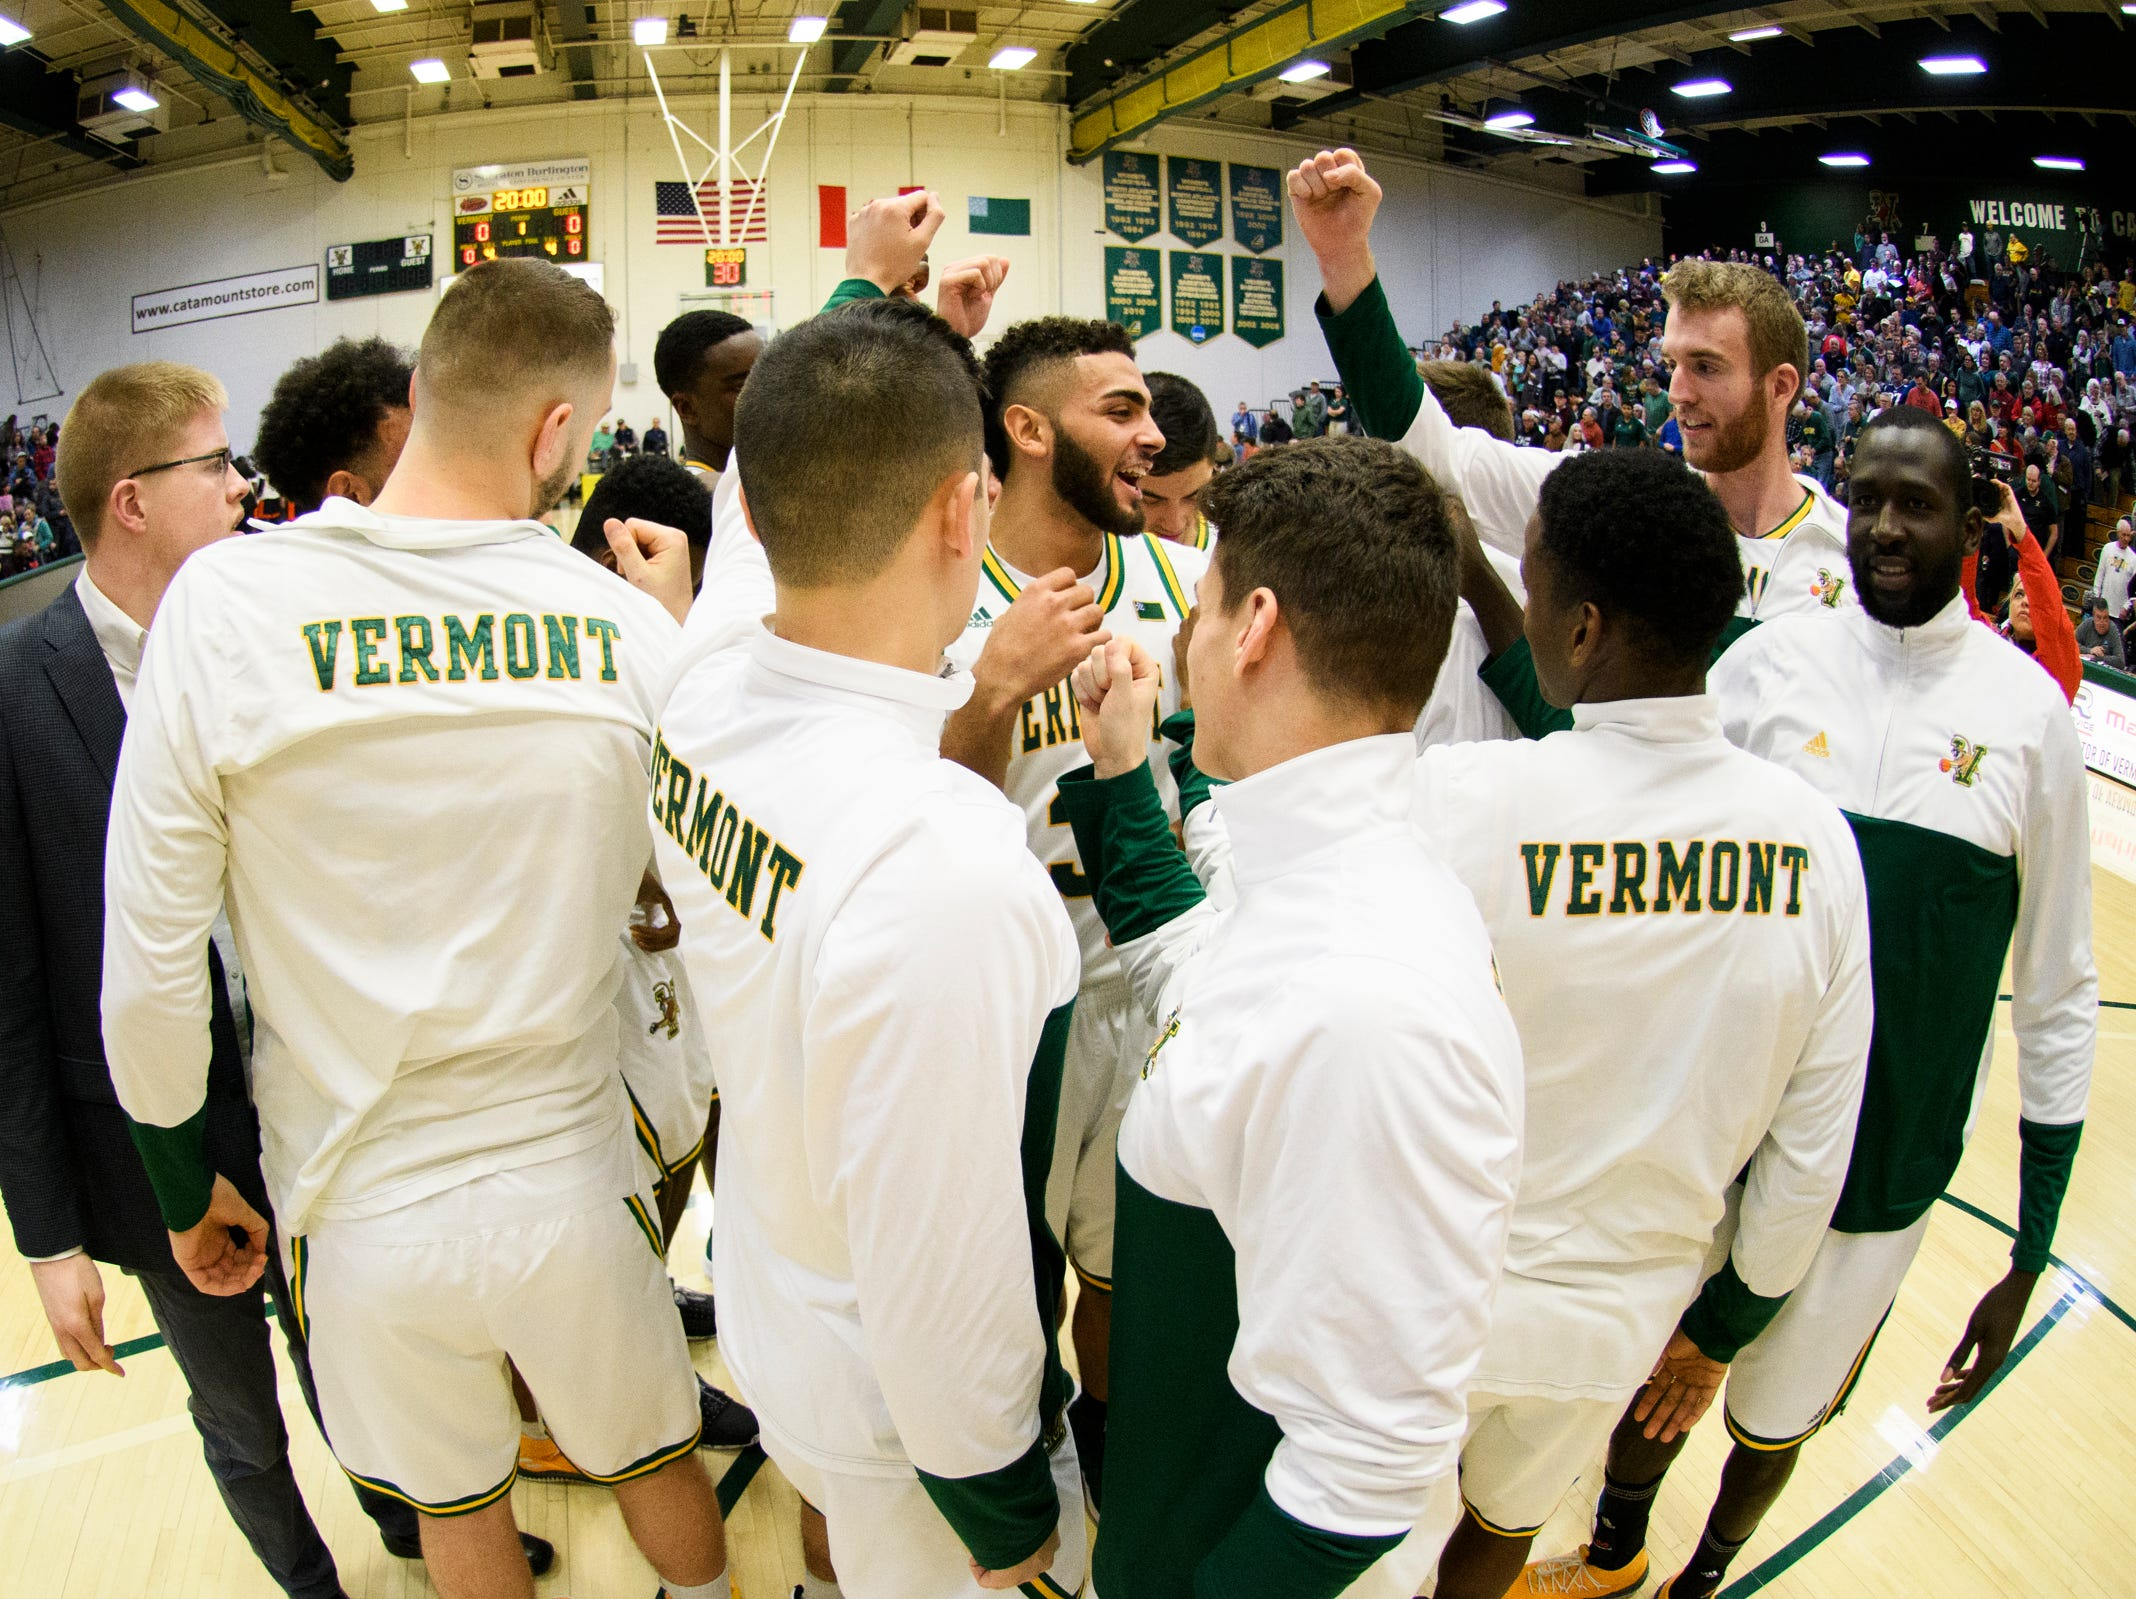 Vermont huddles together during the men's basketball game between the Bucknell Bison and the Vermont Catamounts at Patrick Gym on Sunday afternoon November 25, 2018 in Burlington.